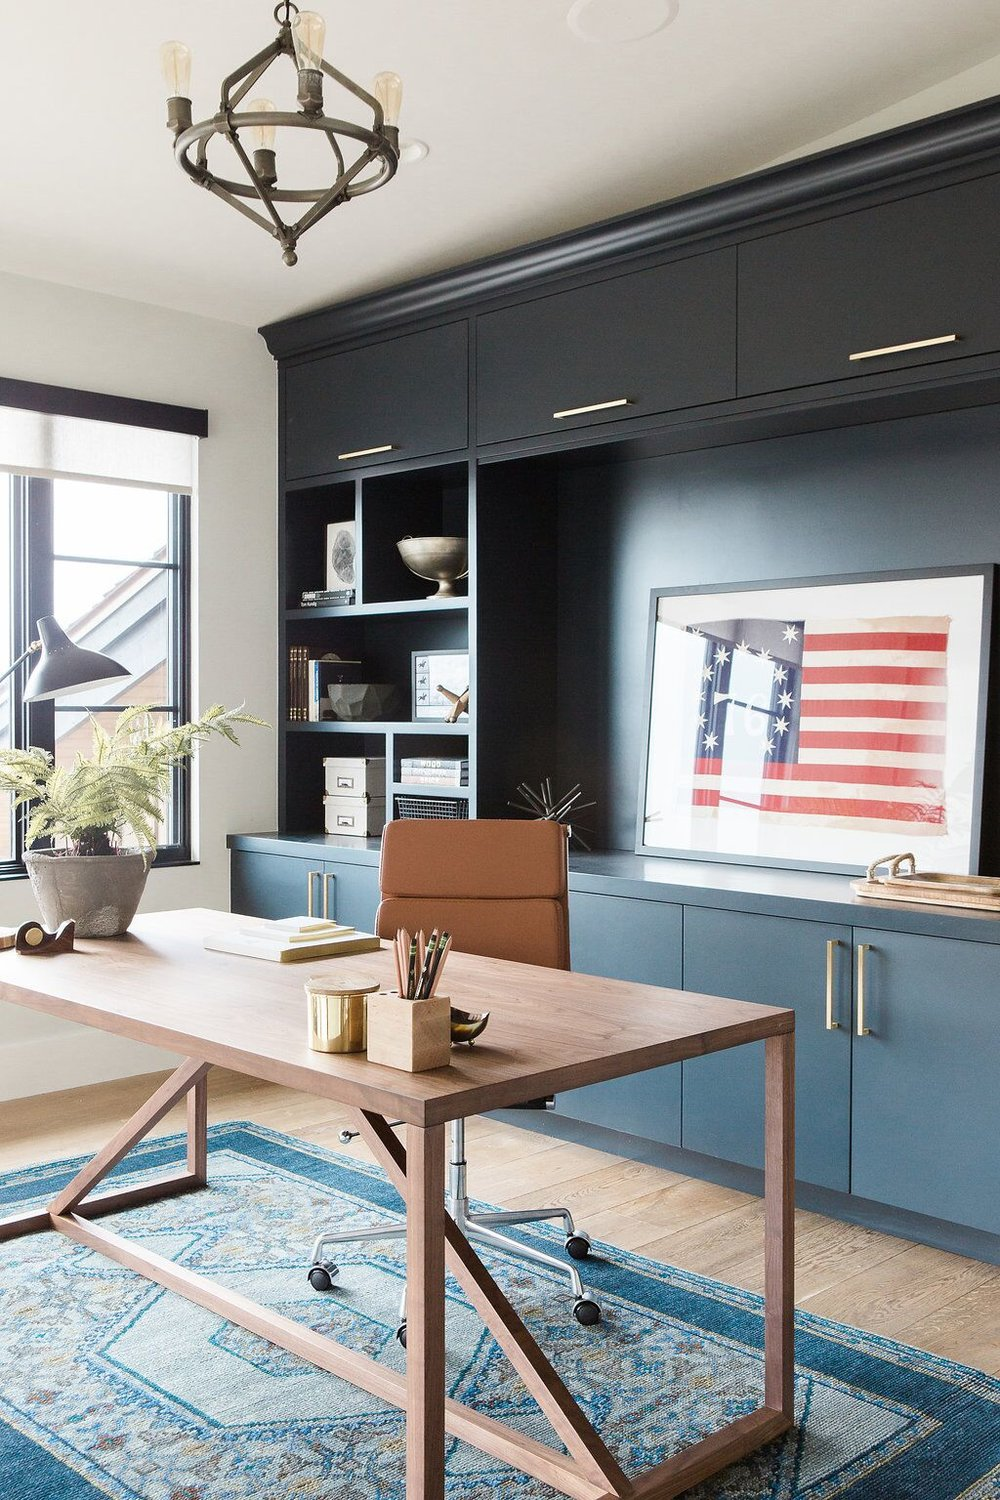 41Modern+office+with+open+shelving,+vintage+rug+and+dark+blue+cabinets.jpg